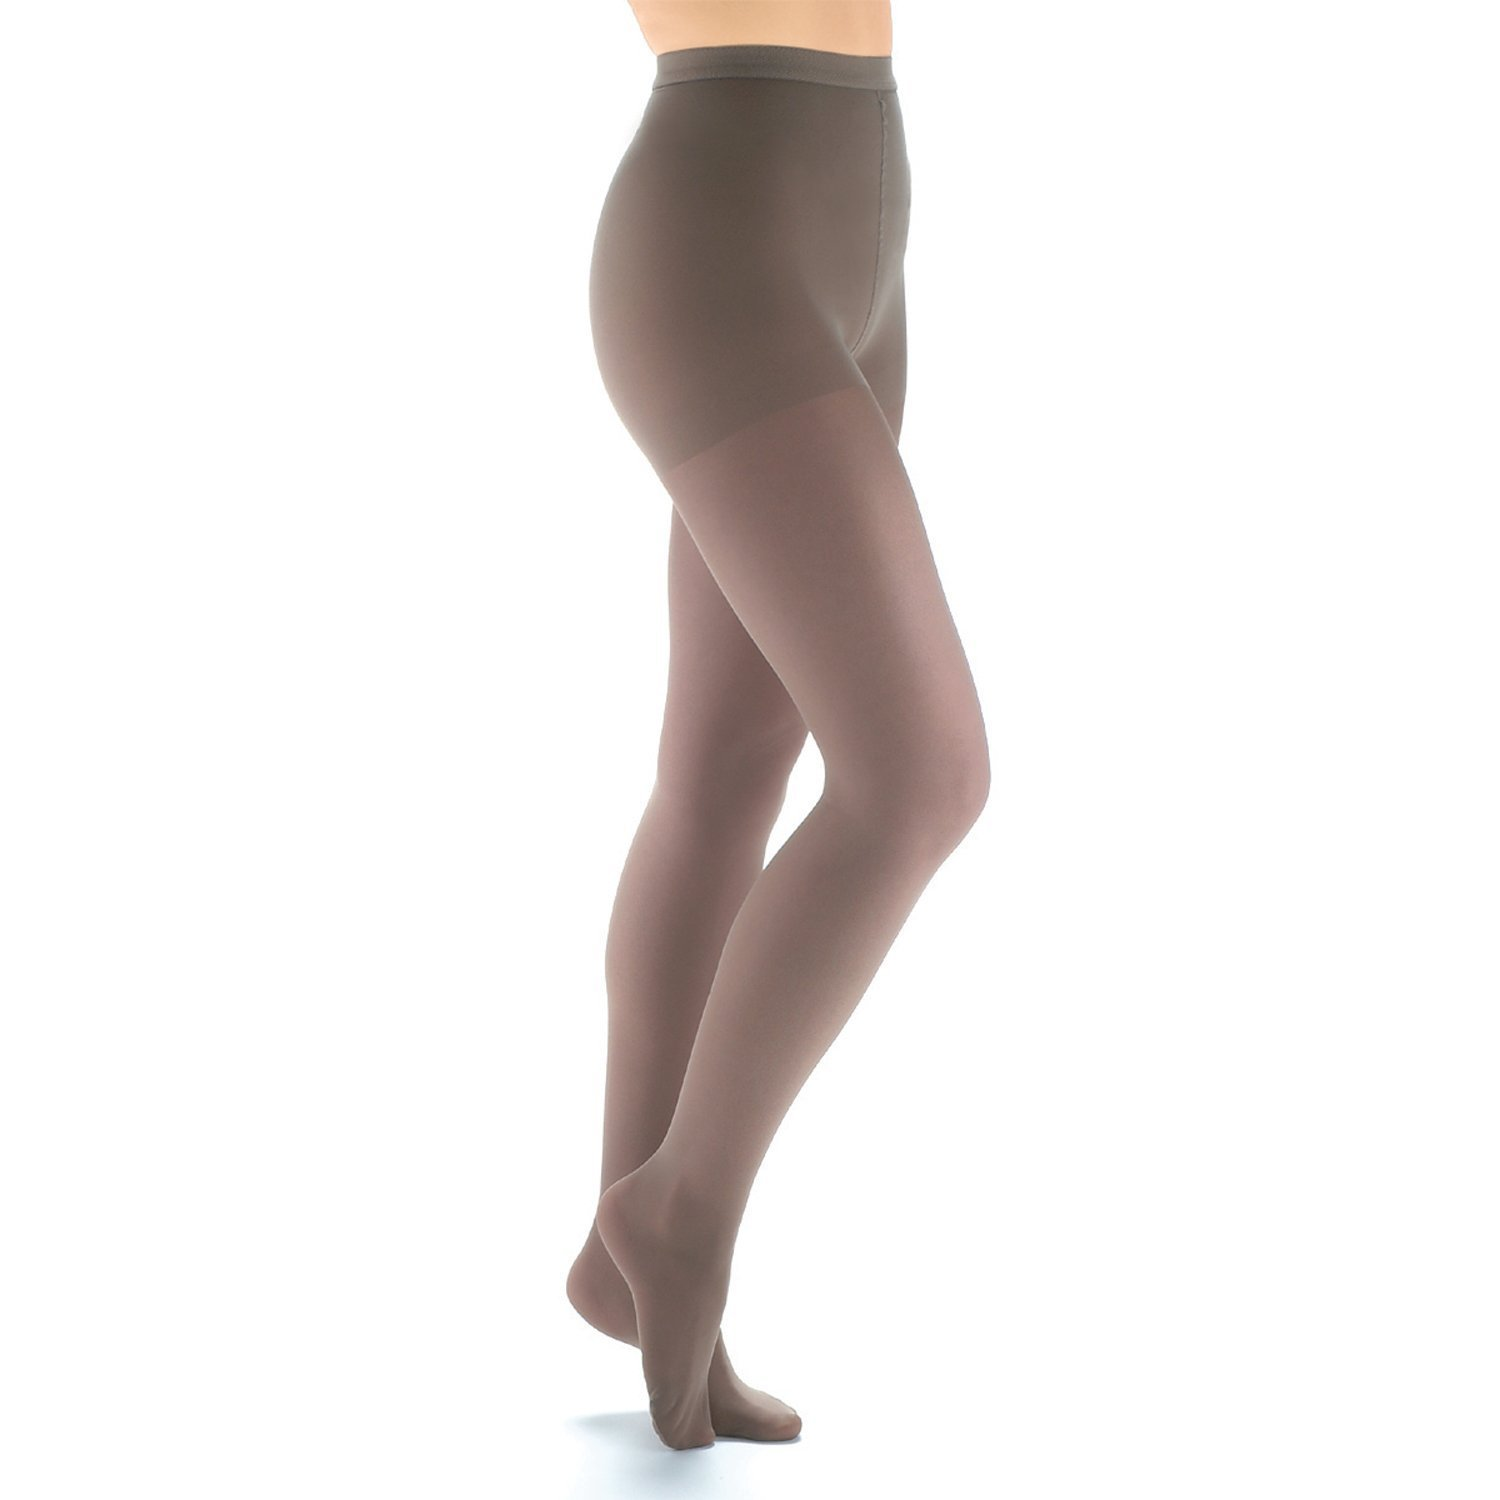 b3db659275 Get Quotations · Women's Support Plus Moderate 13-16 mm/Hg Compression  Pantyhose - Black - Extra